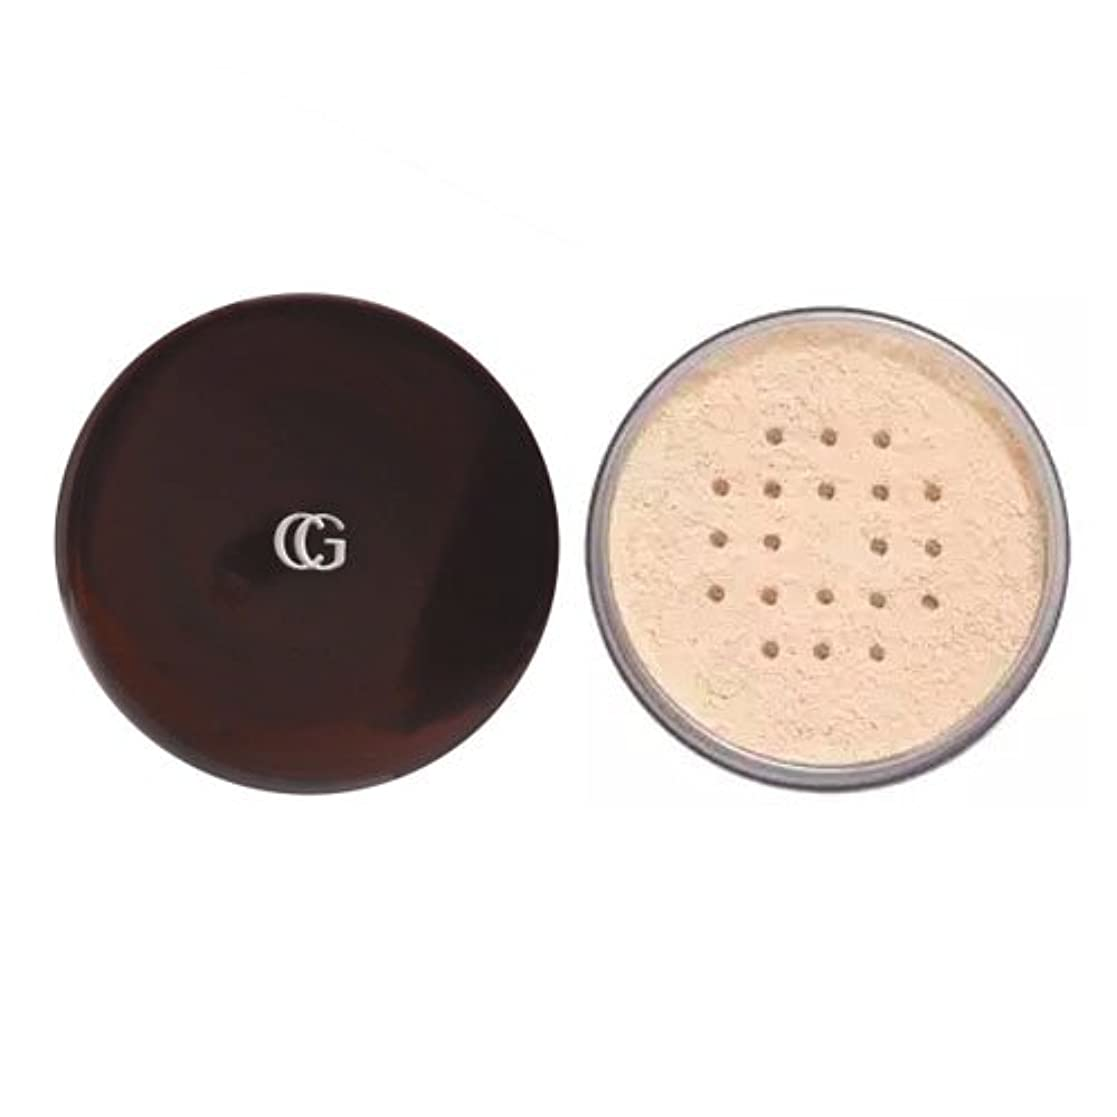 フルーティーどきどき死ぬ(3 Pack) COVERGIRL Professional Loose Powder - Translucent Fair 105 (並行輸入品)